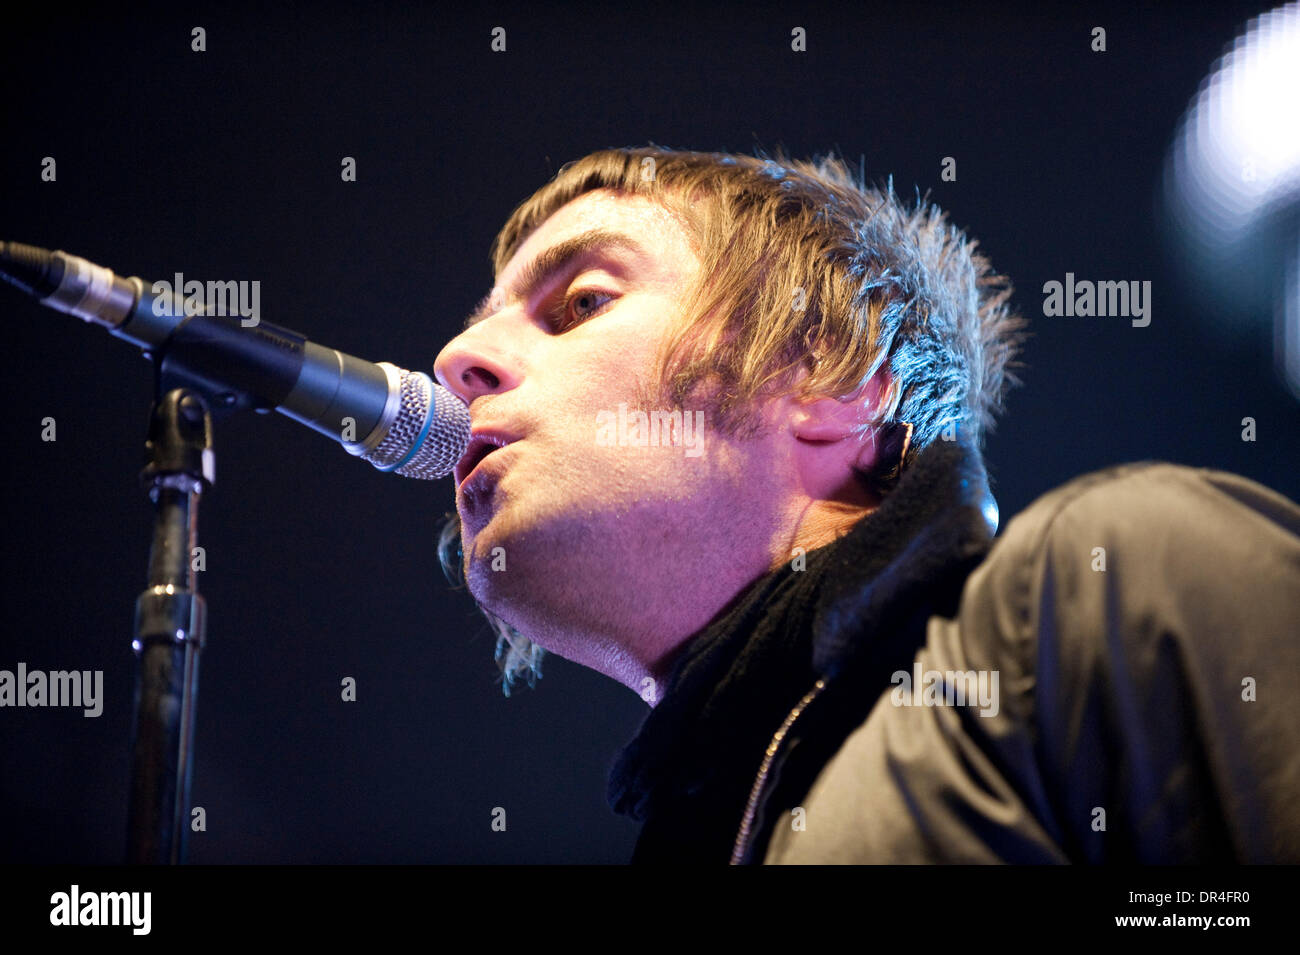 Dec 15, 2008 - London, Ontario, Canada - Singer LIAM GALLAGHER  of Oasis performs during a show at the John Labatt Centre in London. (Credit Image: © Oliver Day/Southcreek EMI/ZUMA Press) - Stock Image